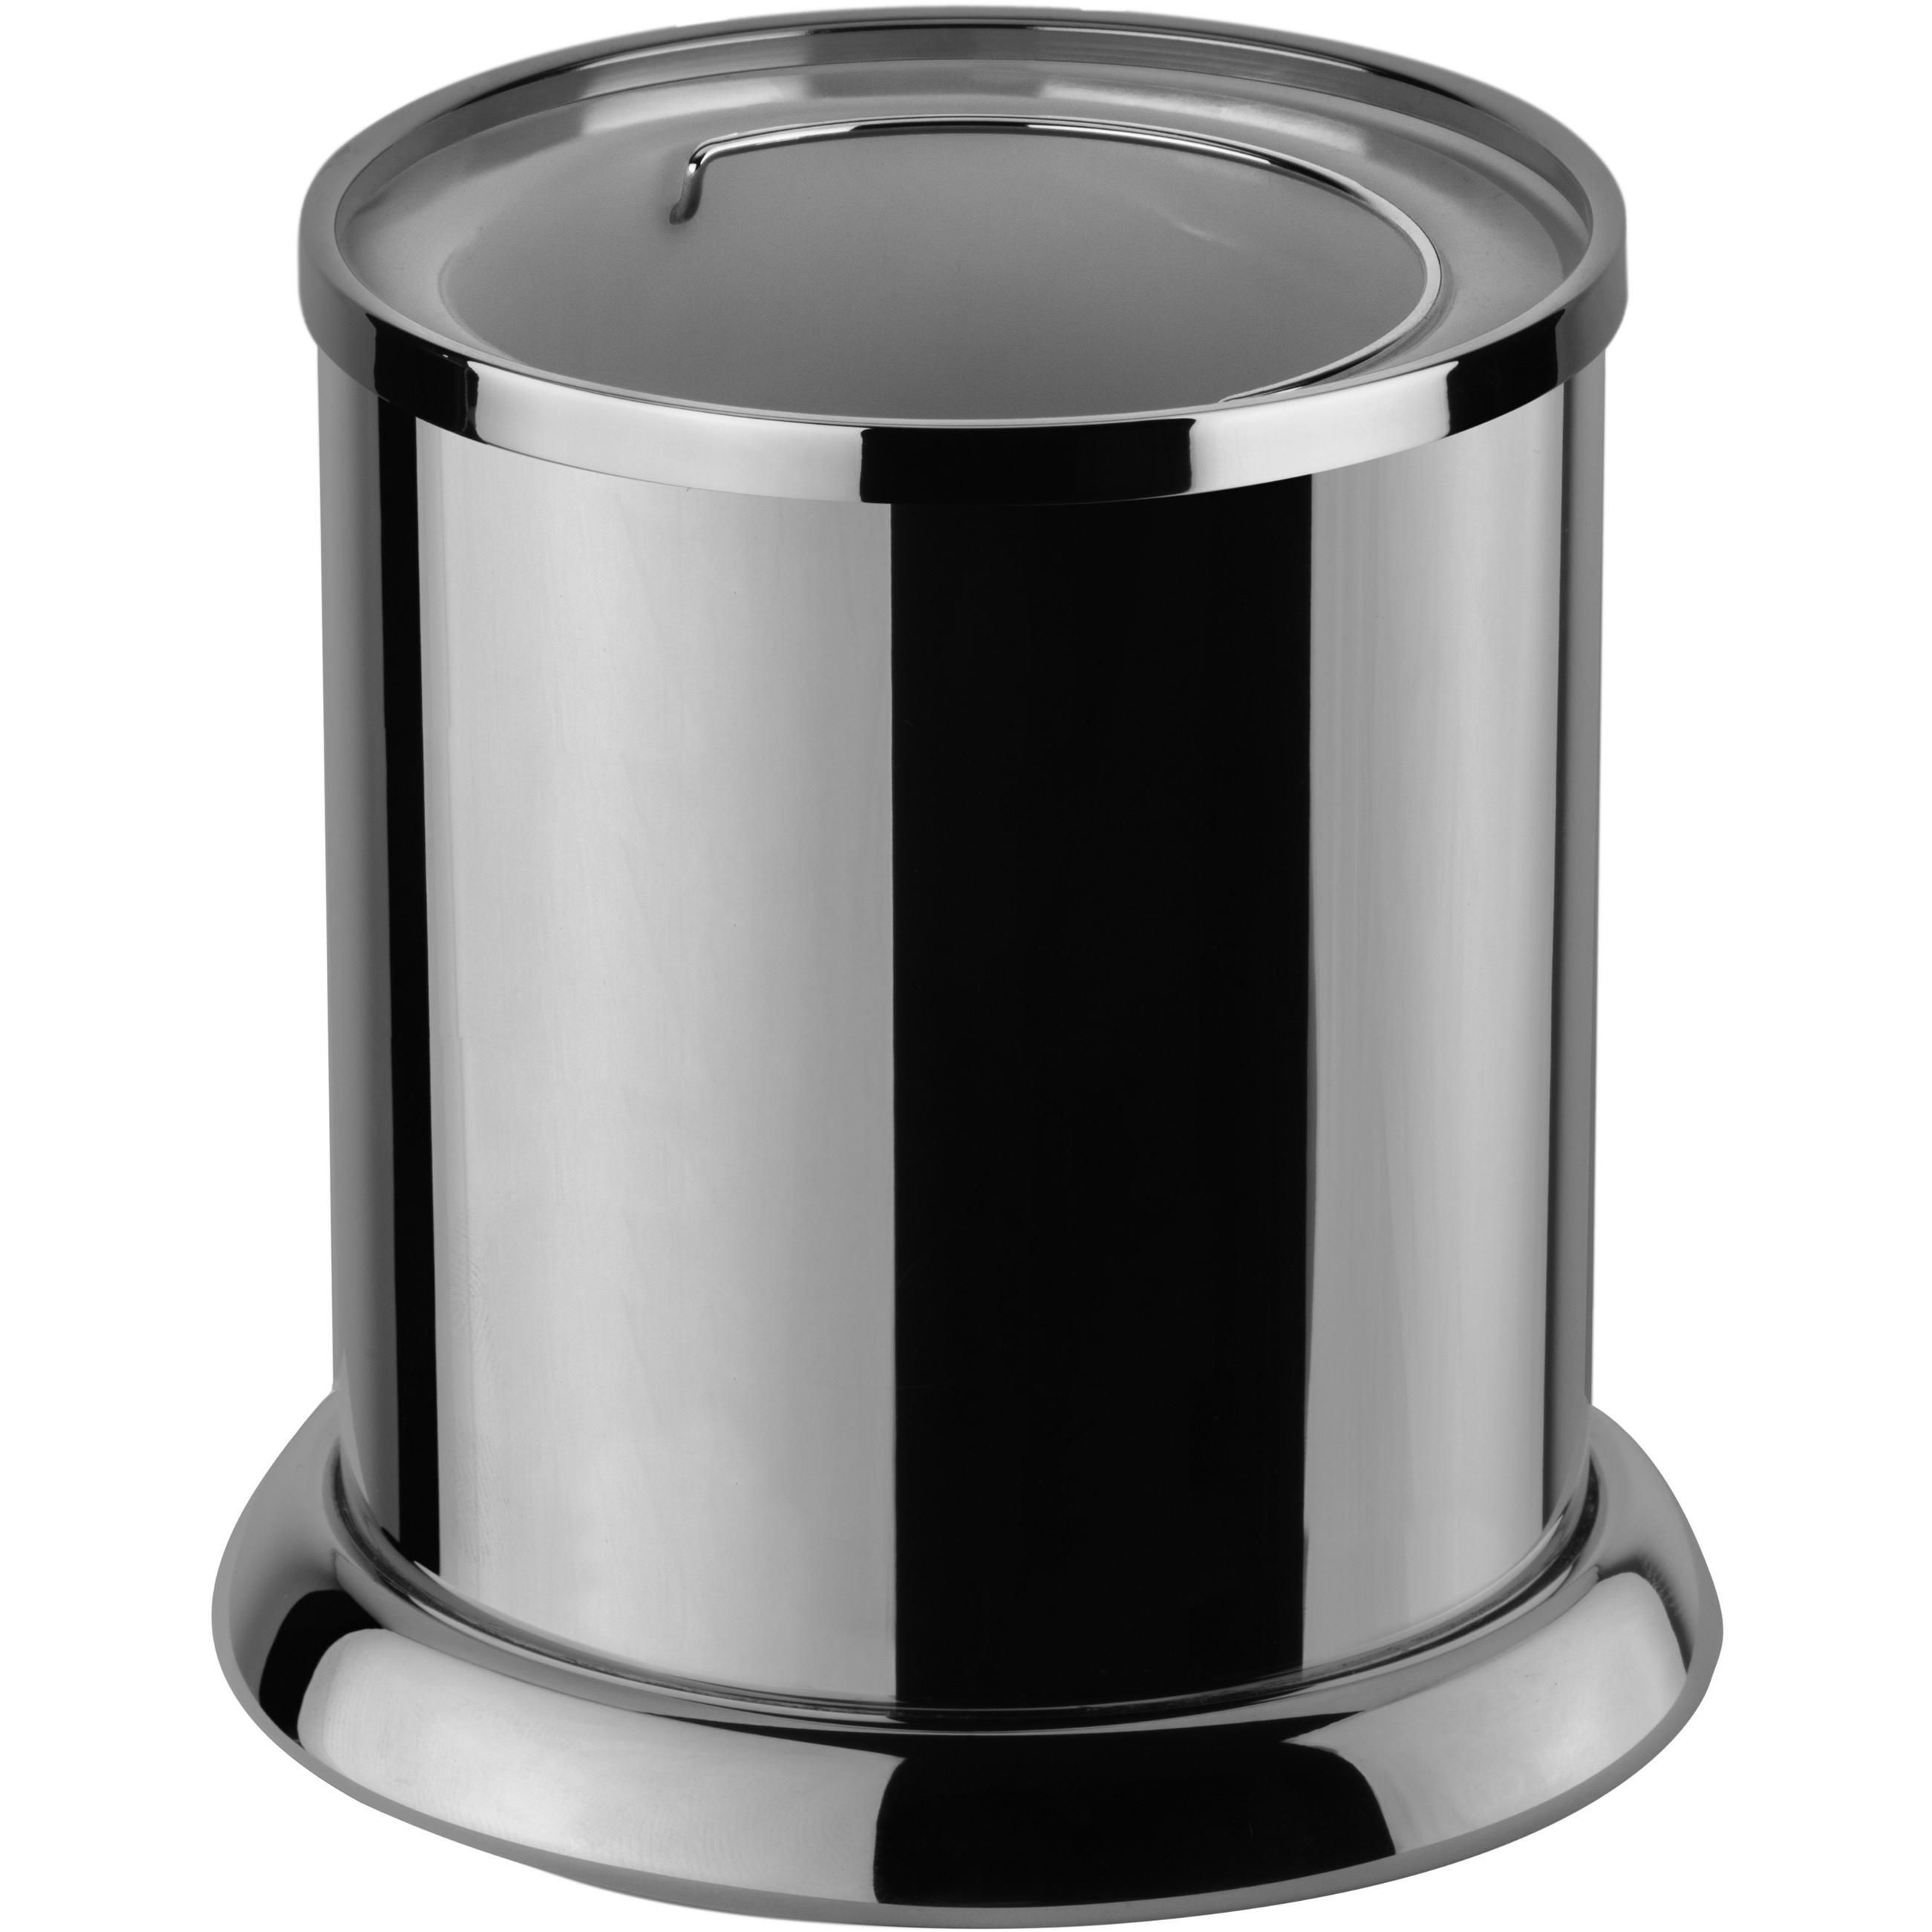 Classic Open Top Wastebasket Trash Can For Bathroom Kitchen